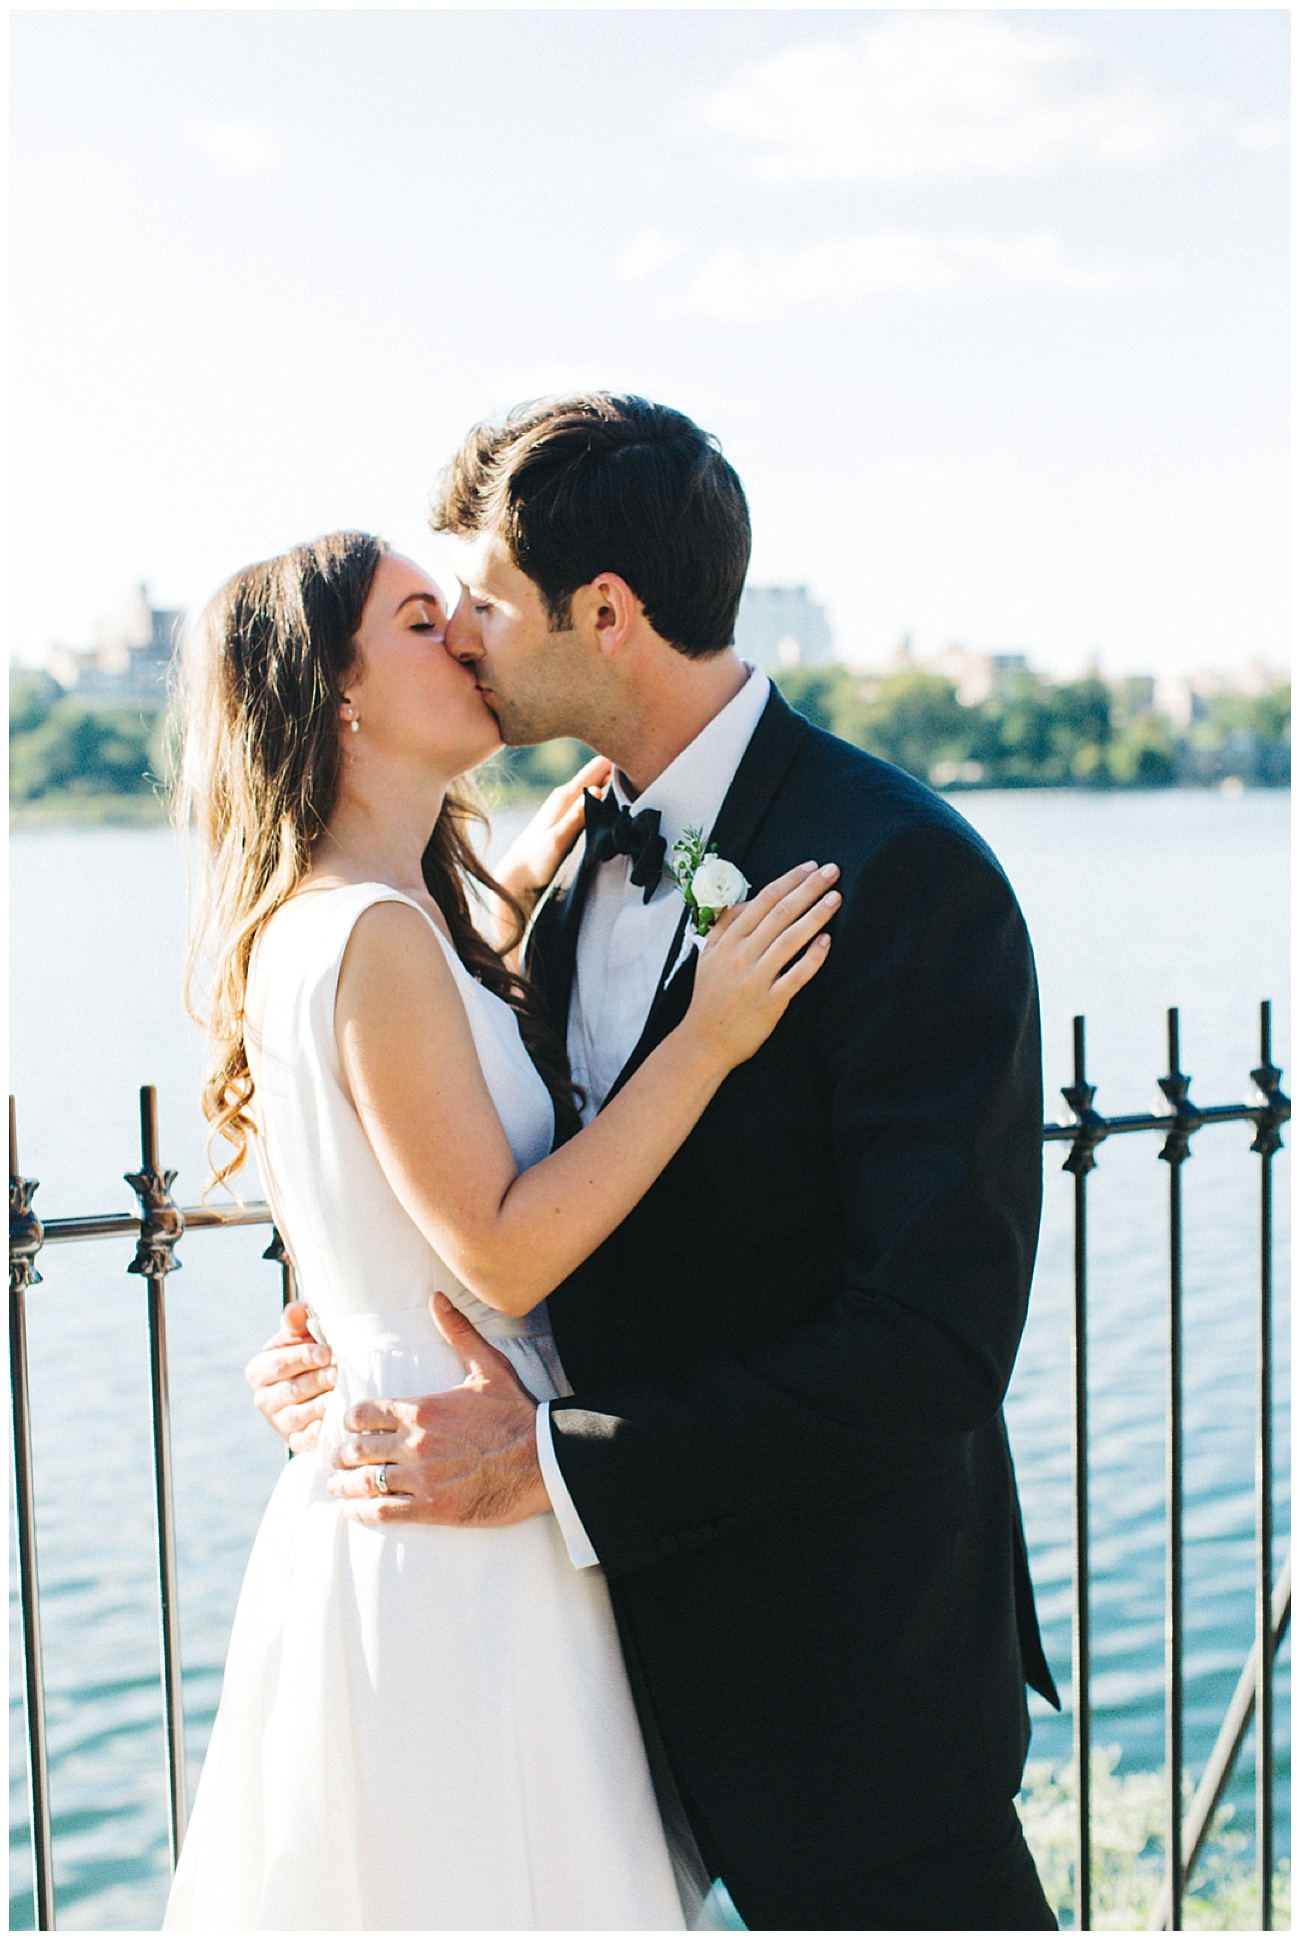 Christine Ted NYC Elopement Wedding_0032